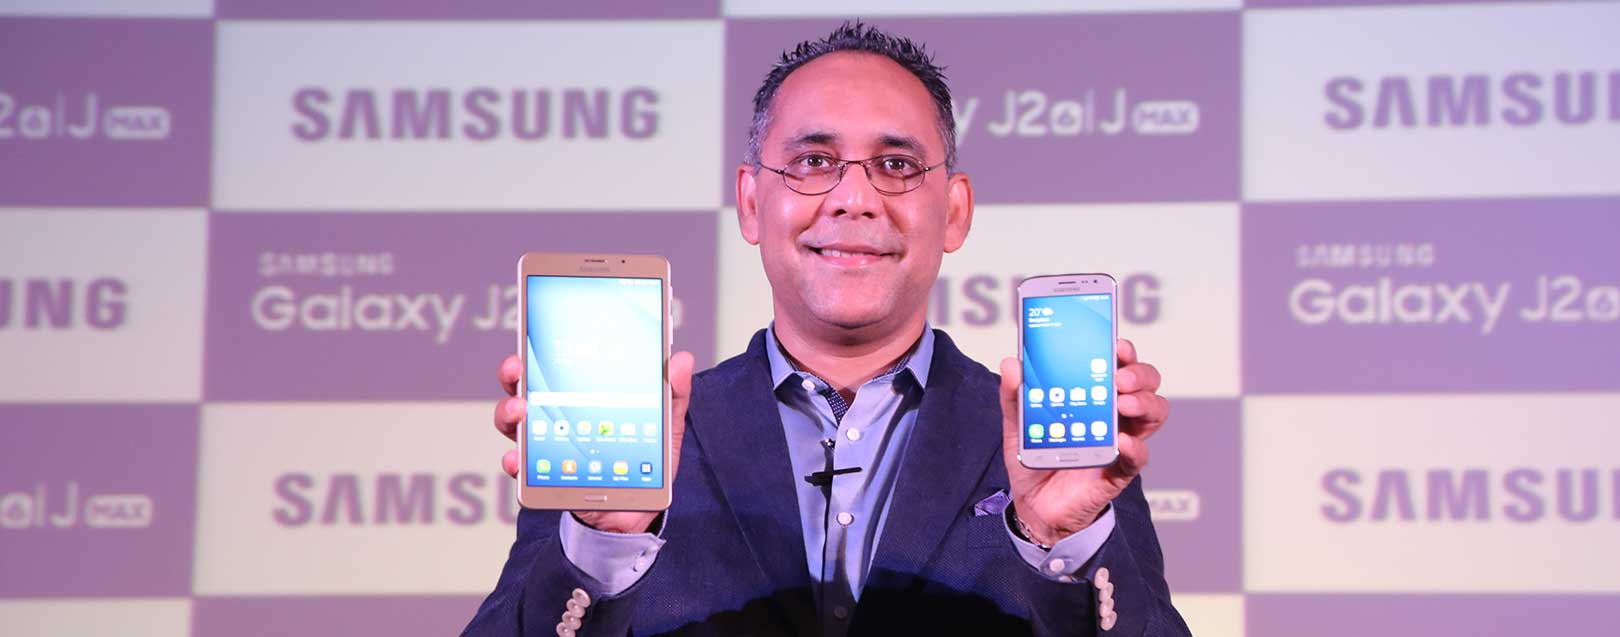 Samsung smartphones reloaded with new innovations